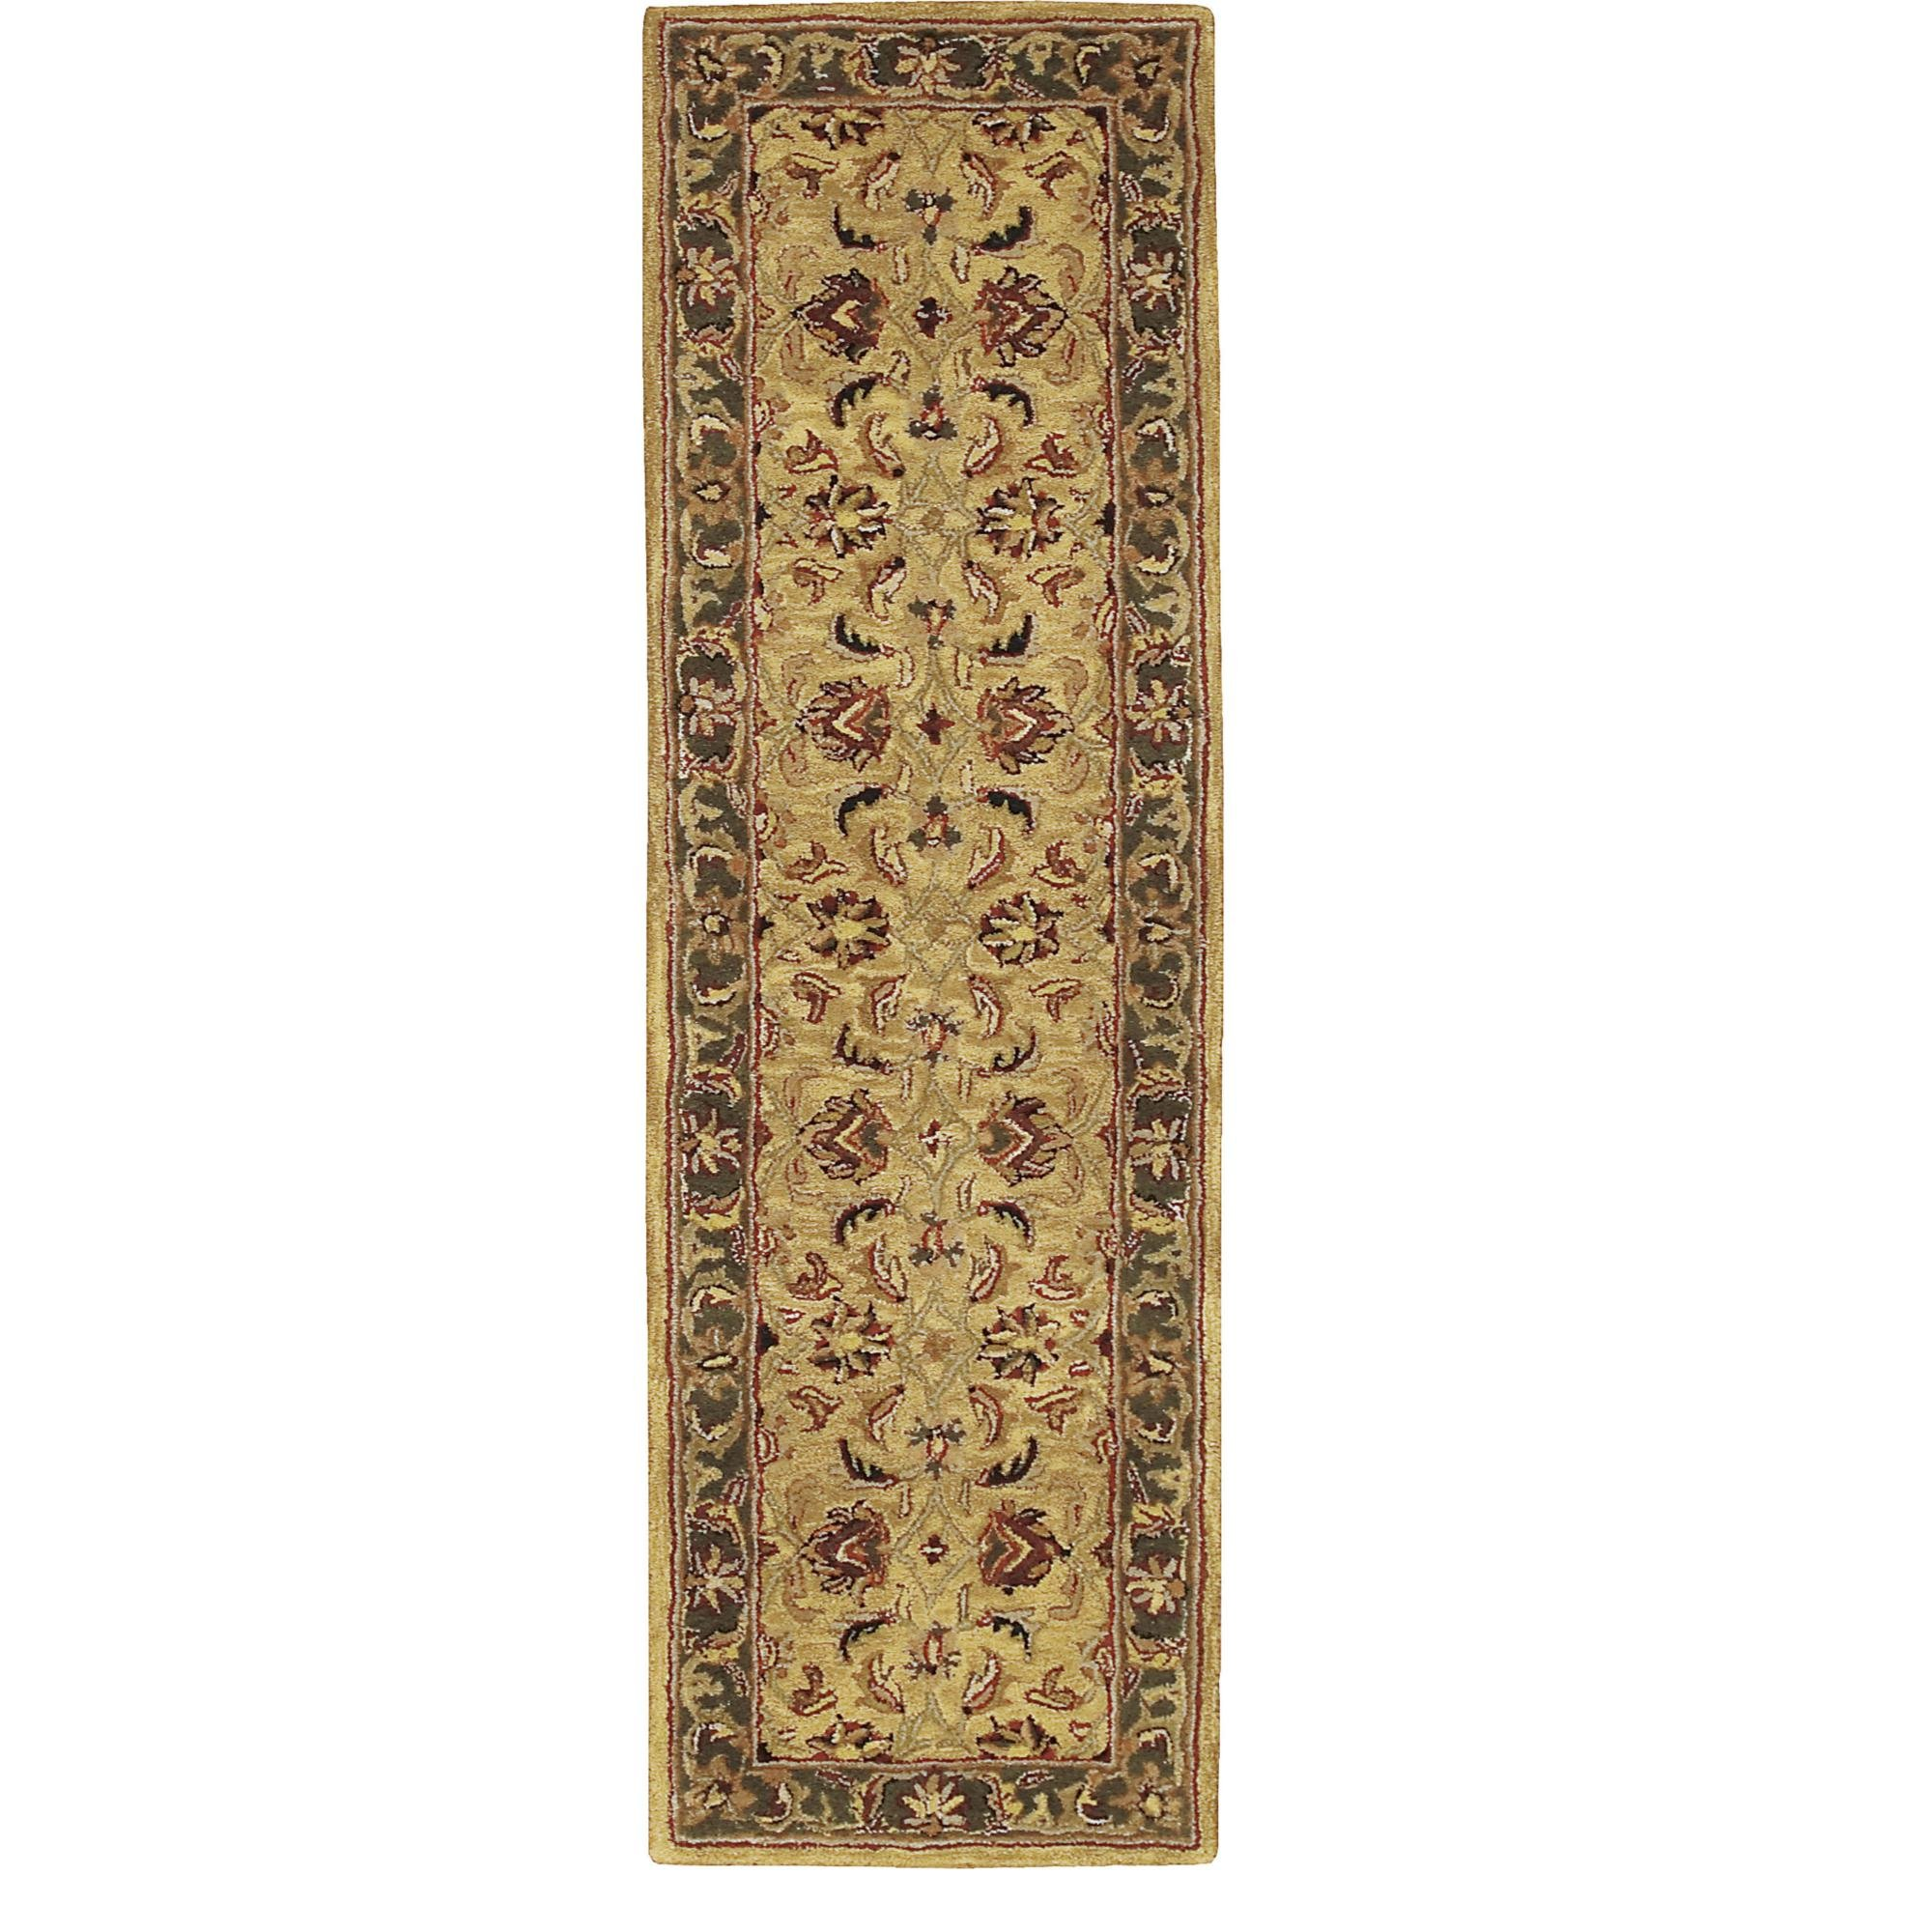 Nourison India House (IH17) Gold Runner Area Rug, 2-Feet by 7-Feet  (2' x 7')